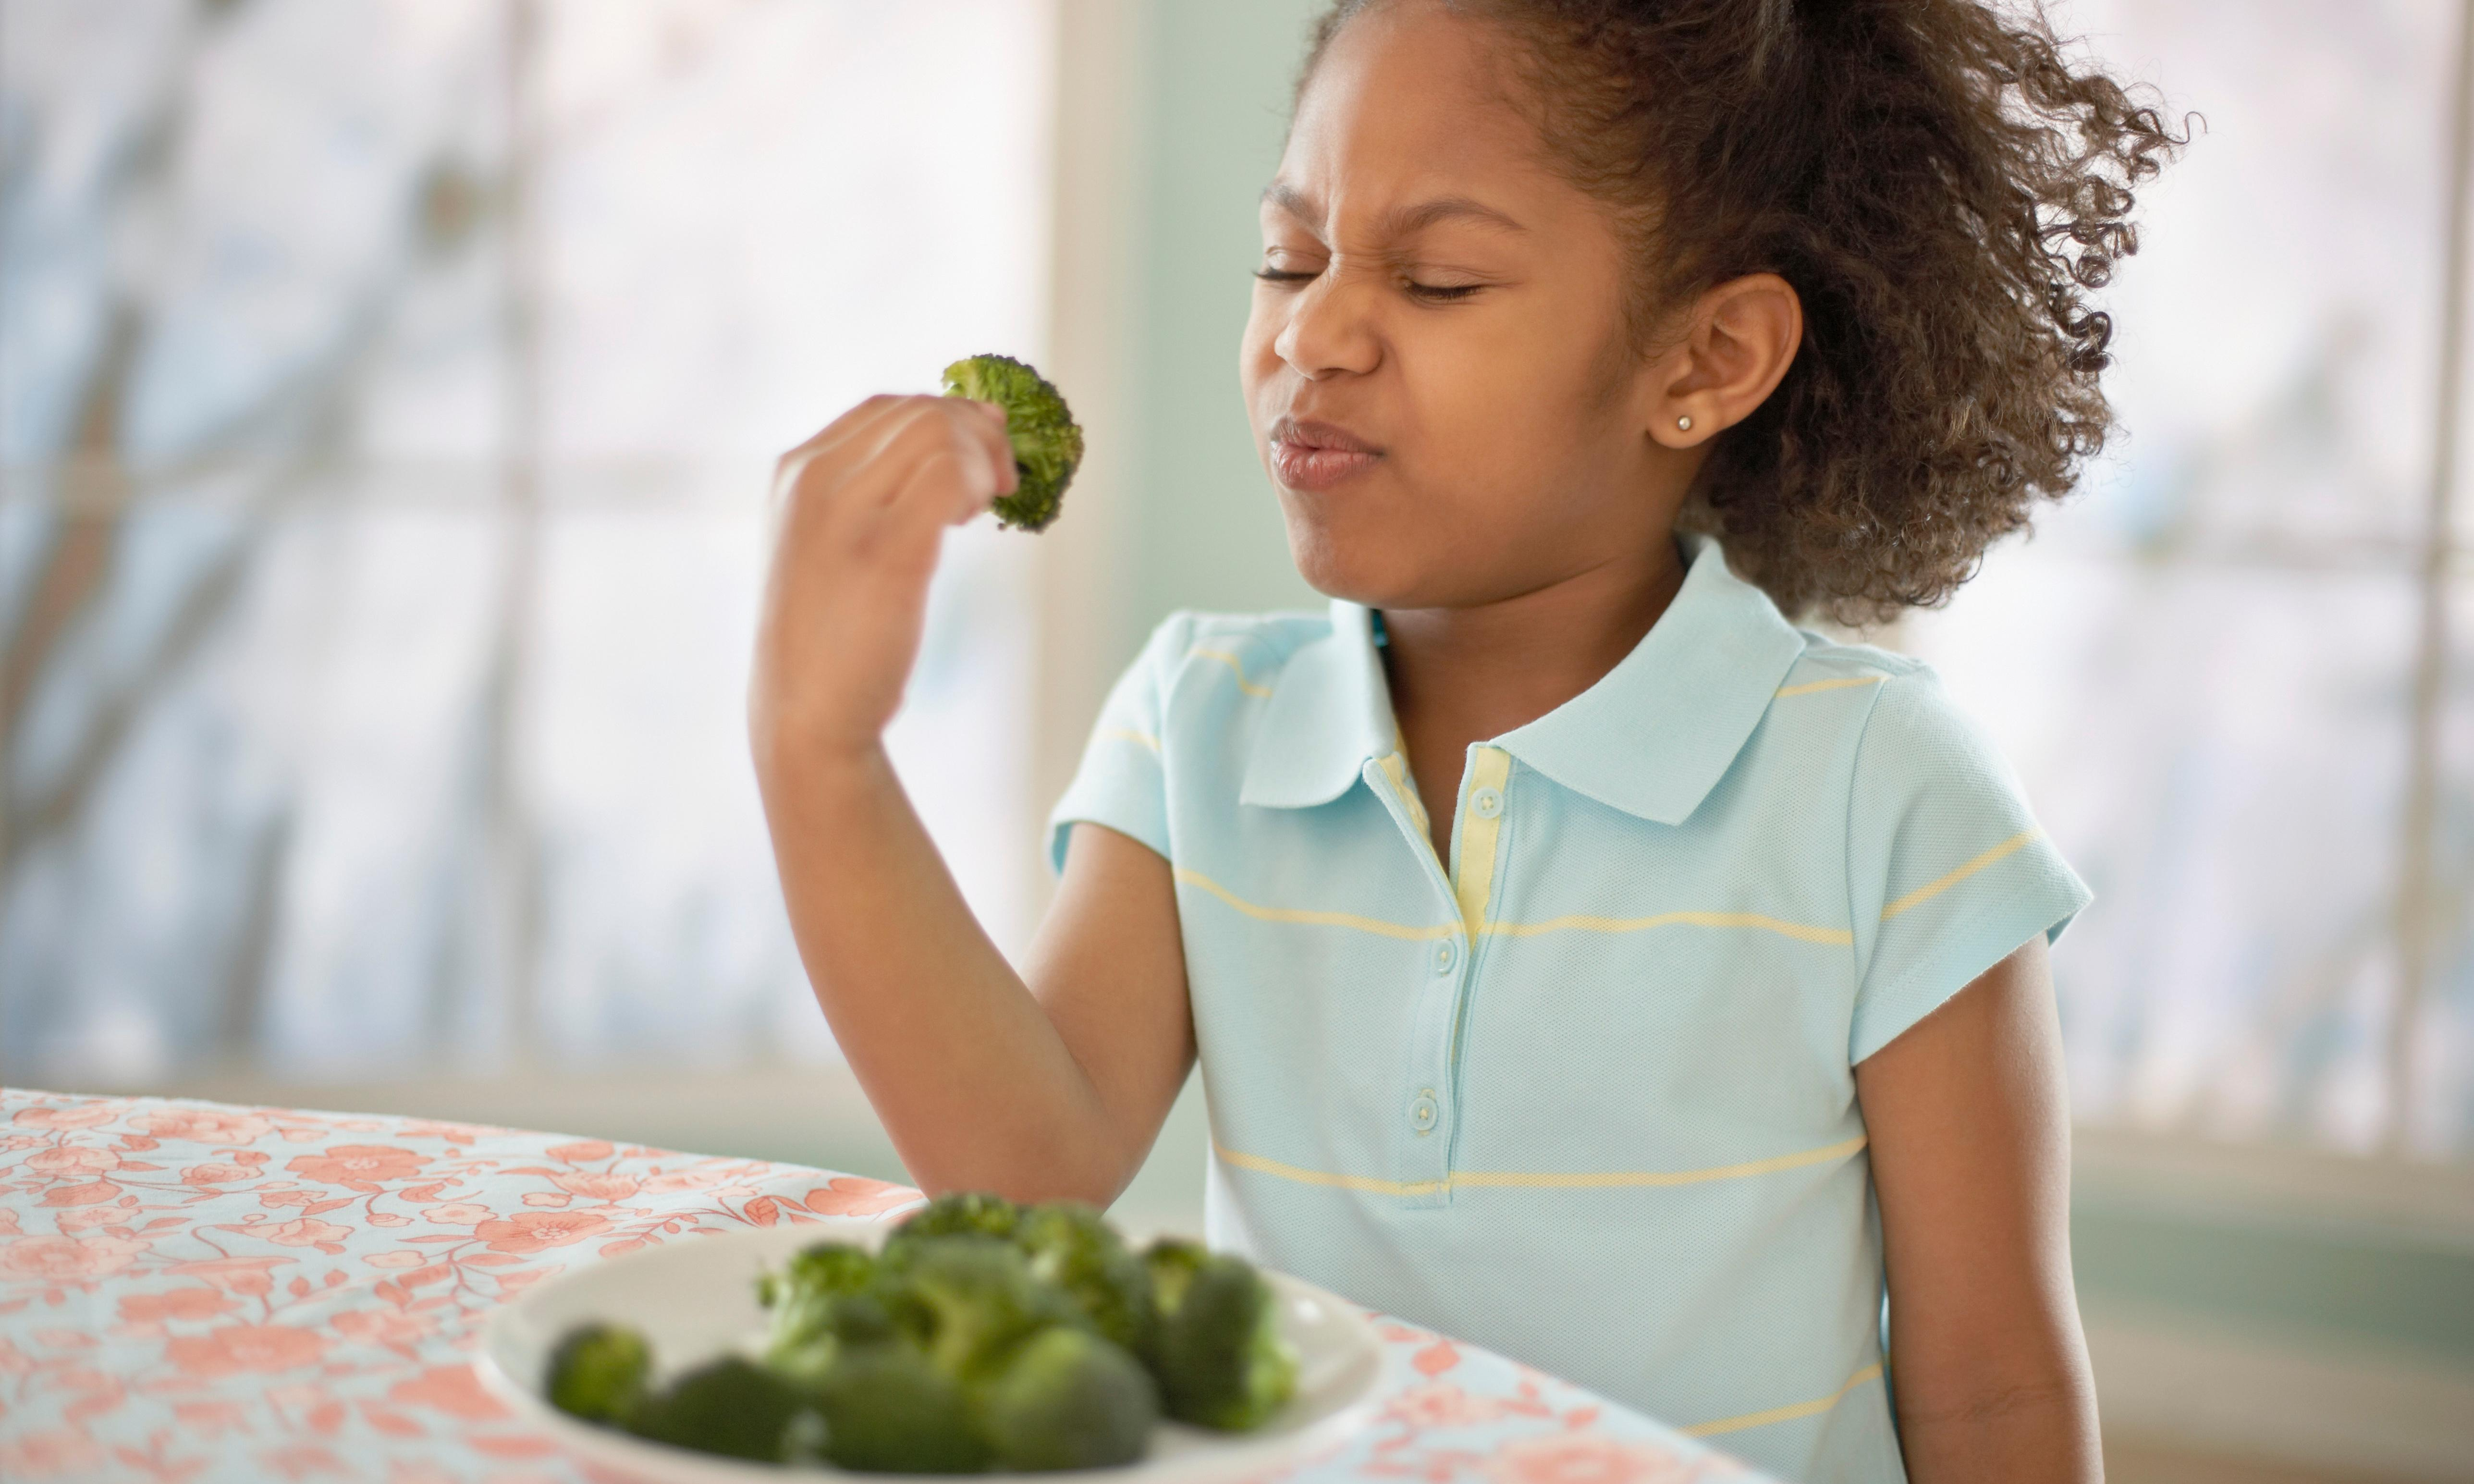 Neurotoxins on your kid's broccoli: that's life under Trump